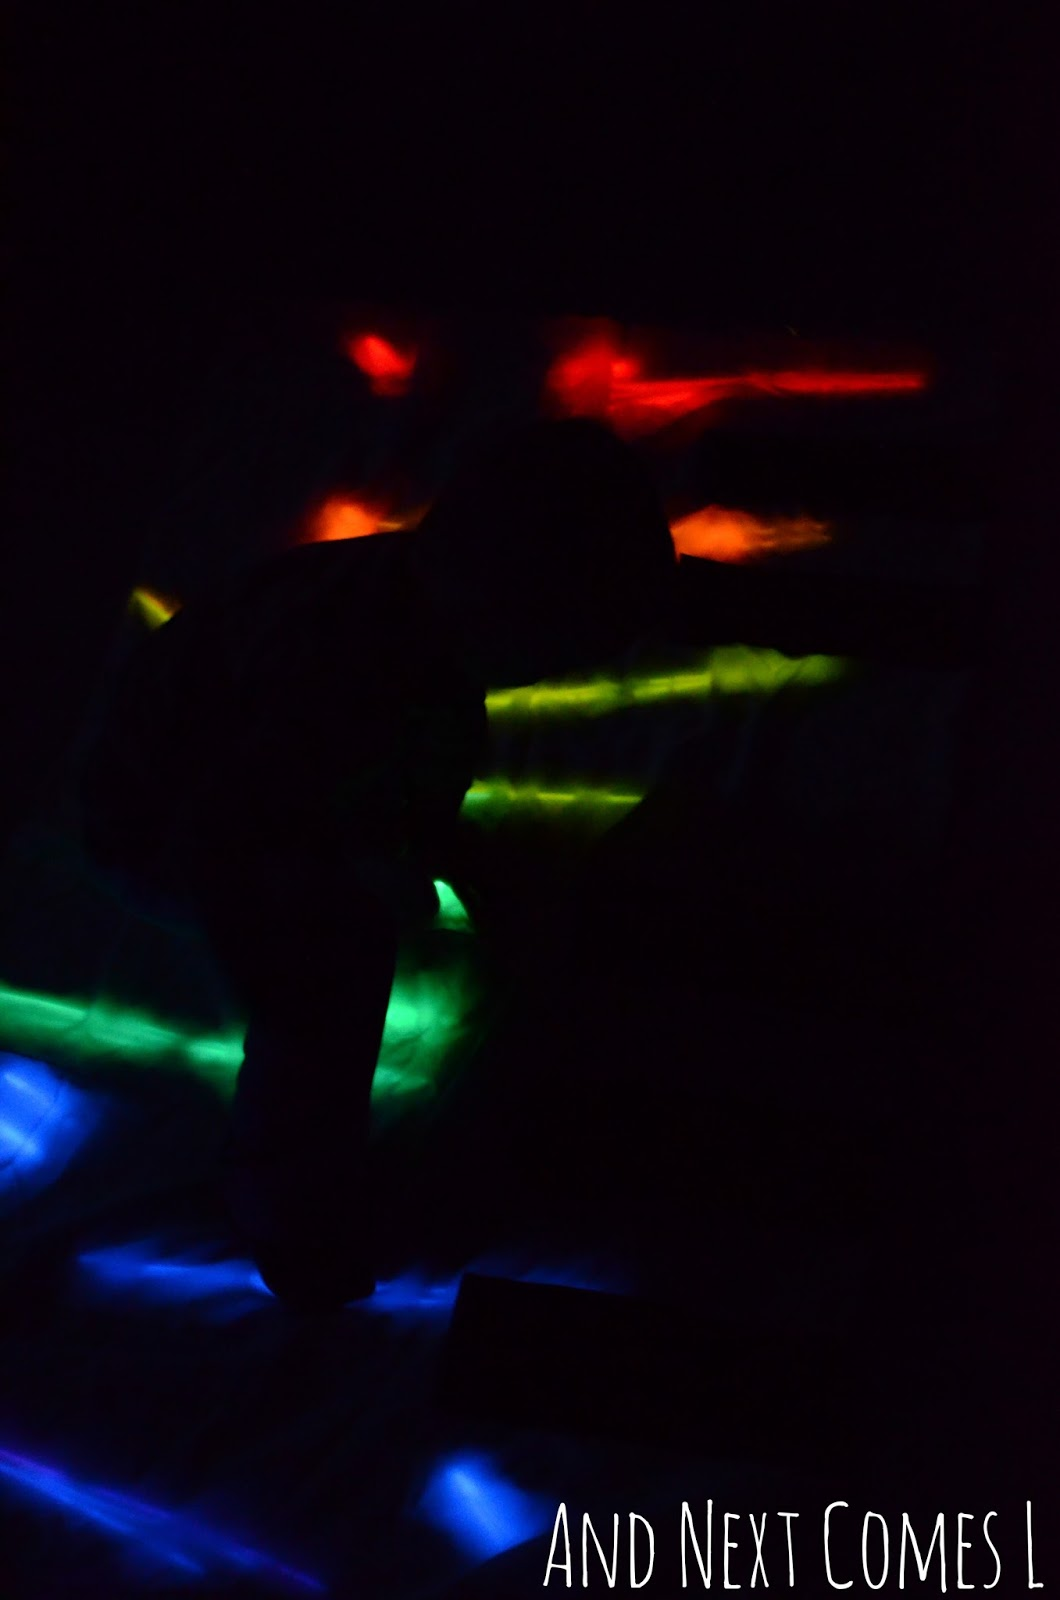 Silhouette against a homemade glowing floor piano from And Next Comes L